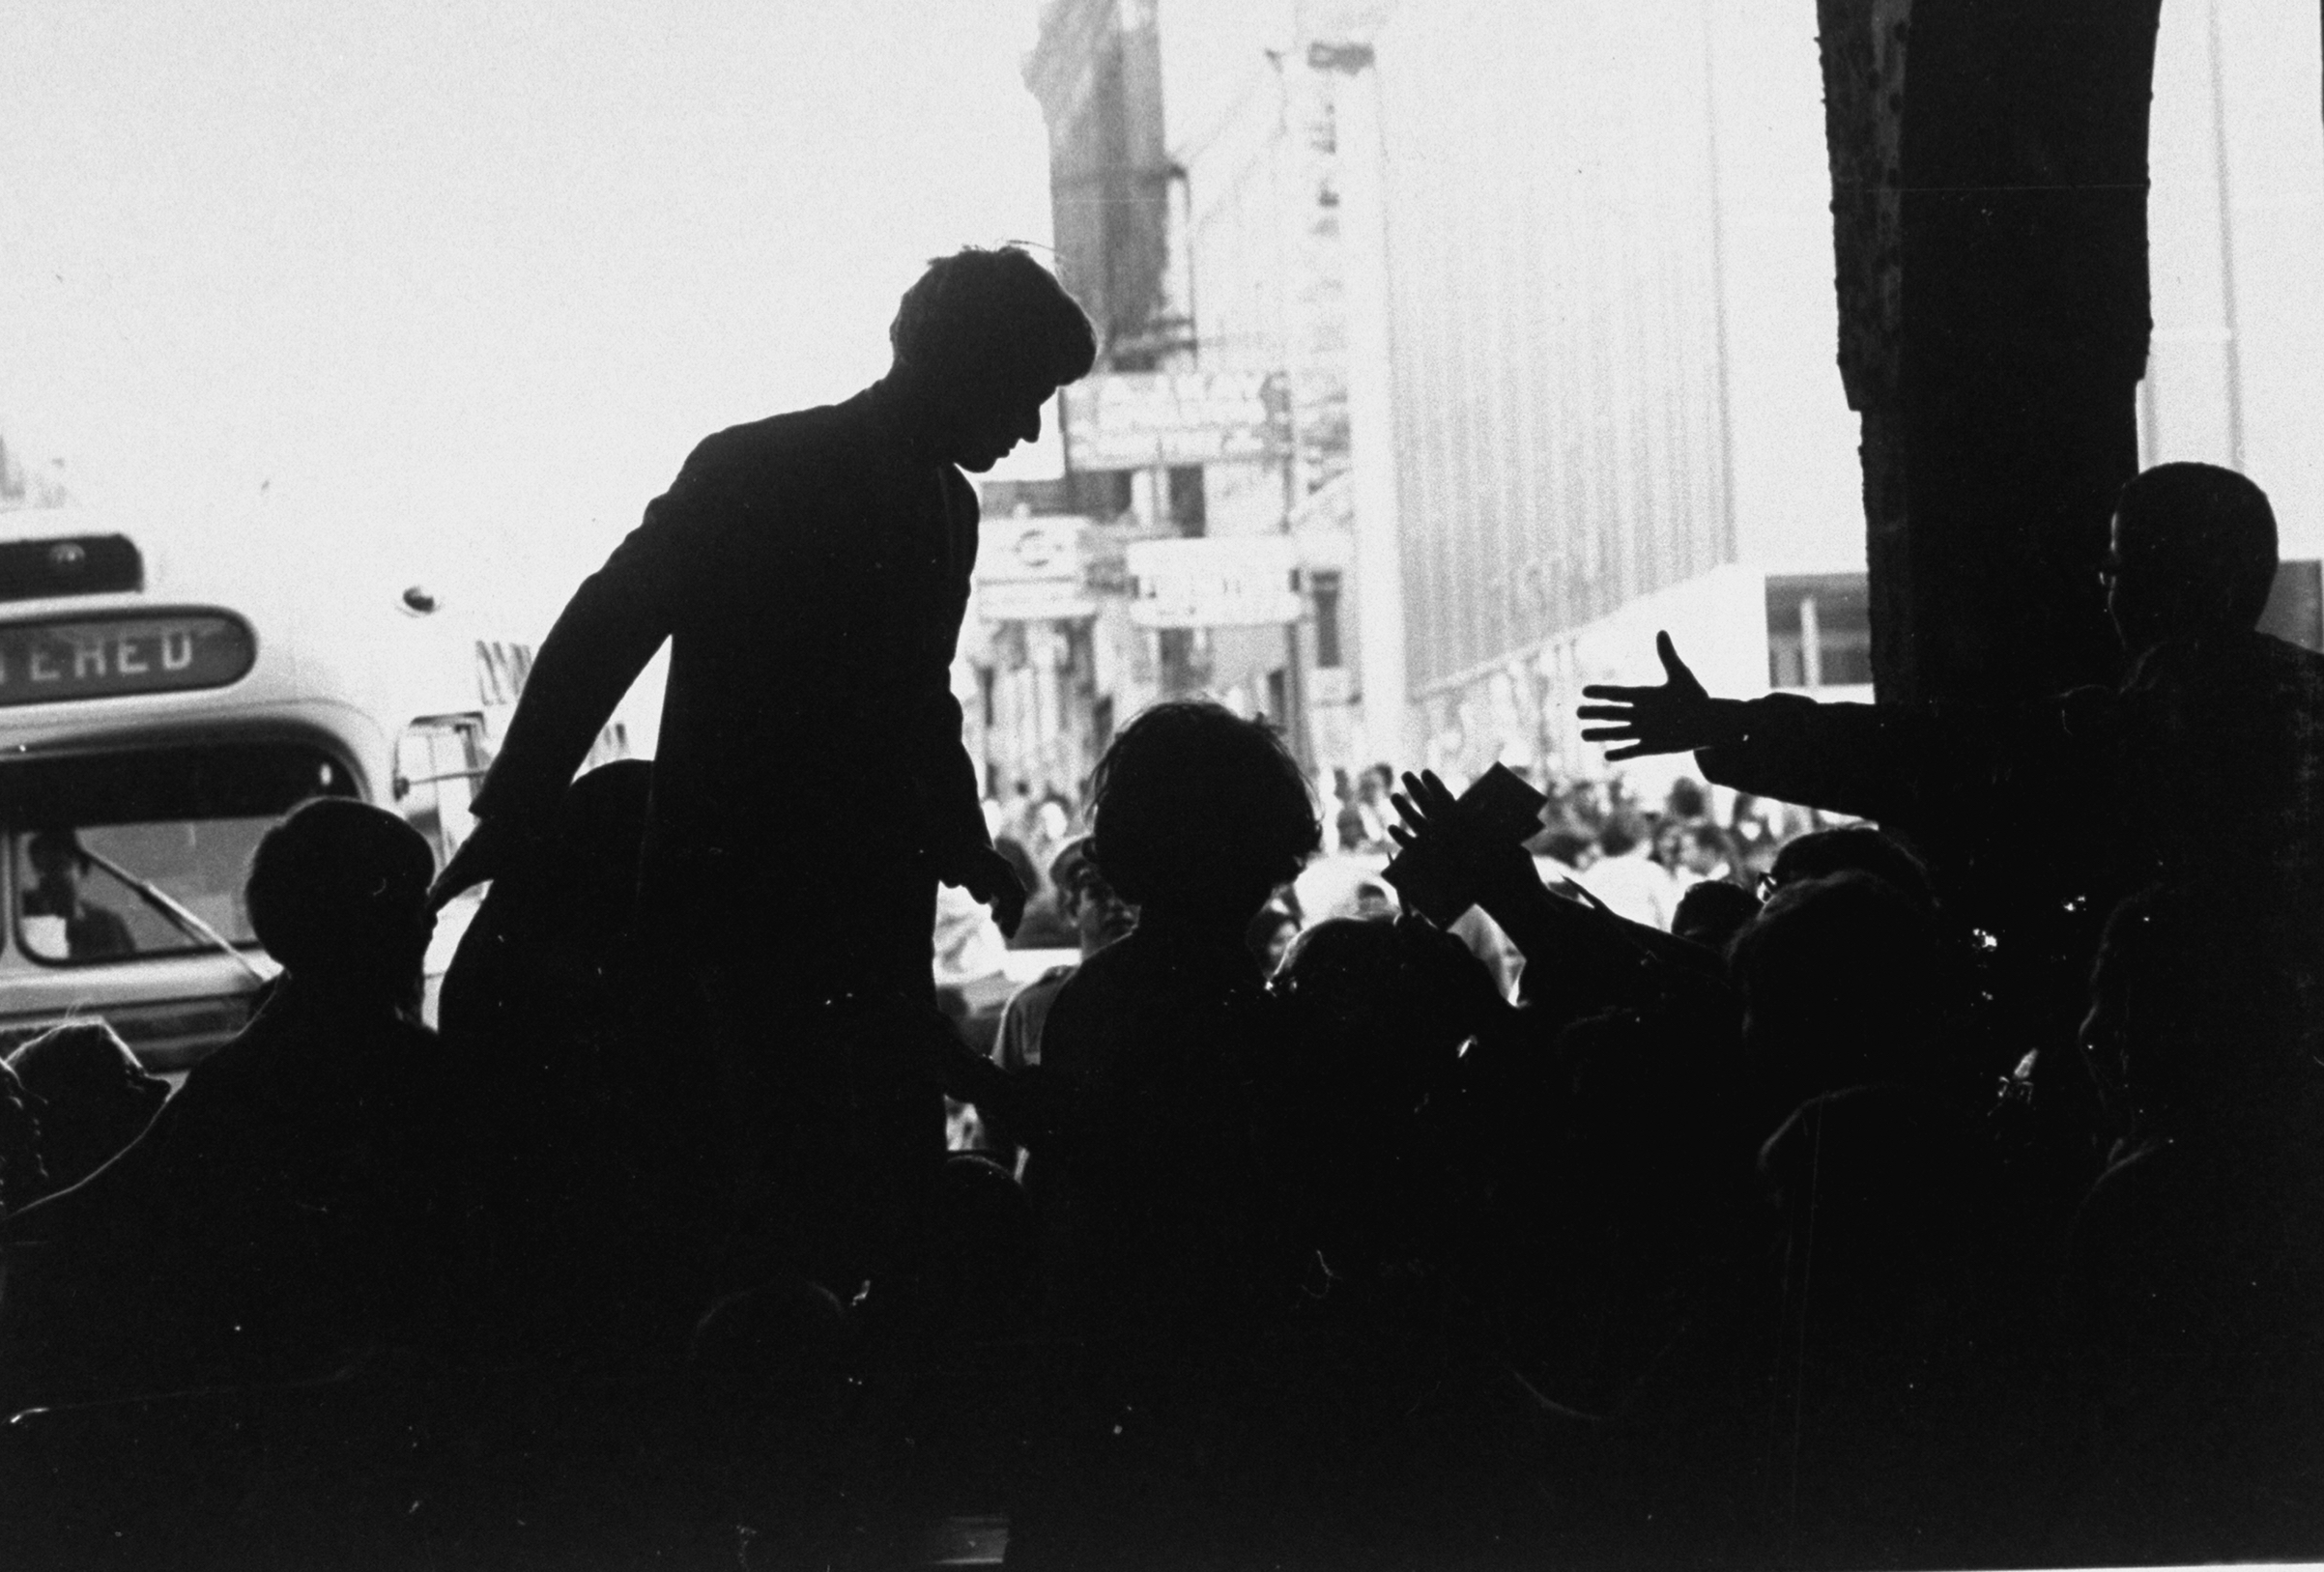 Silhouette of Senator Robert F. Kennedy campaigning in Indiana in early 1968.